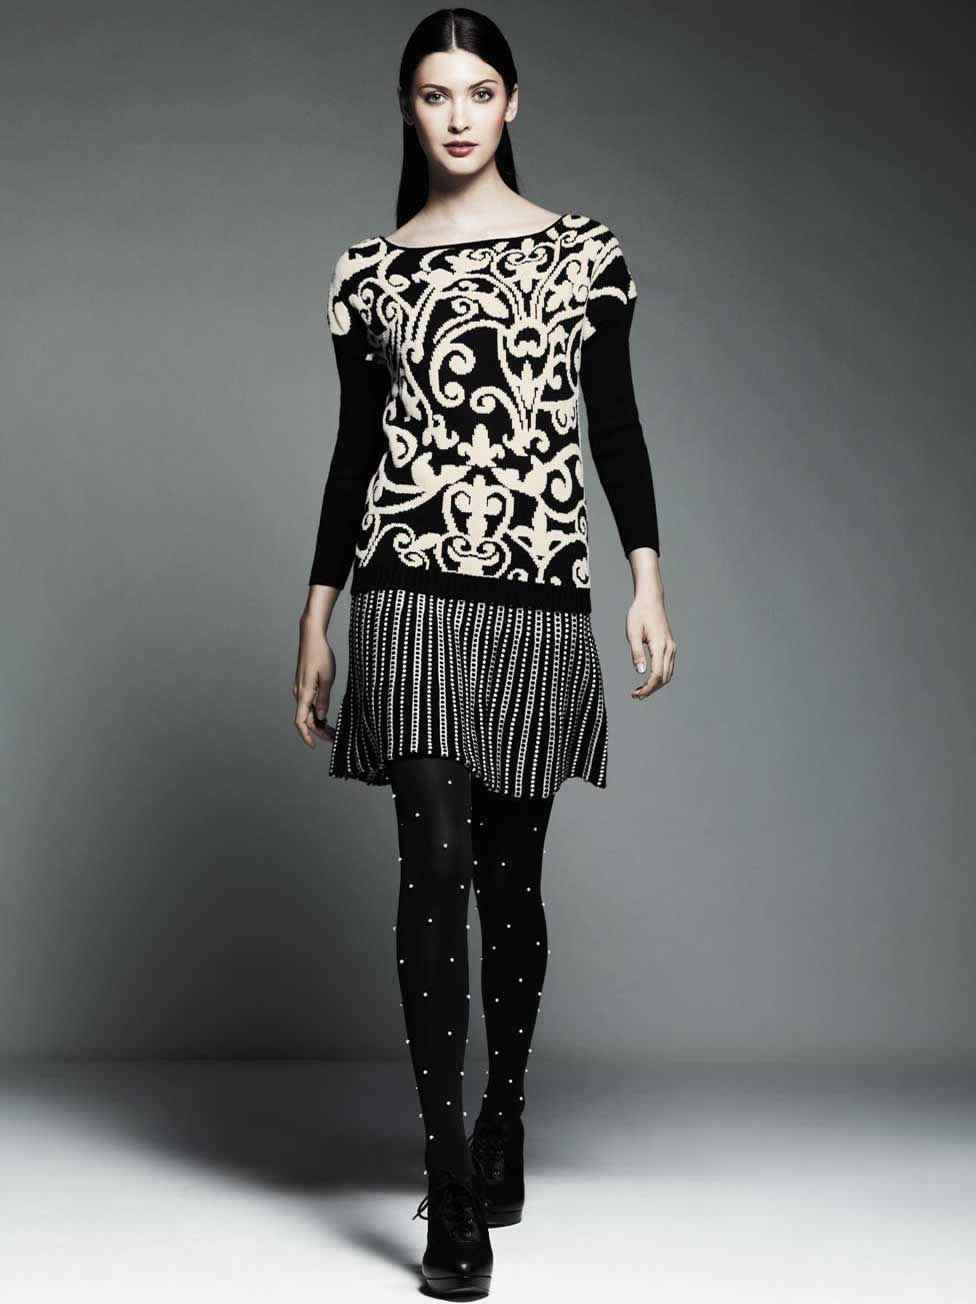 Très Chic Workweek Jacquard Sweater with Skirt Price: $50-$68